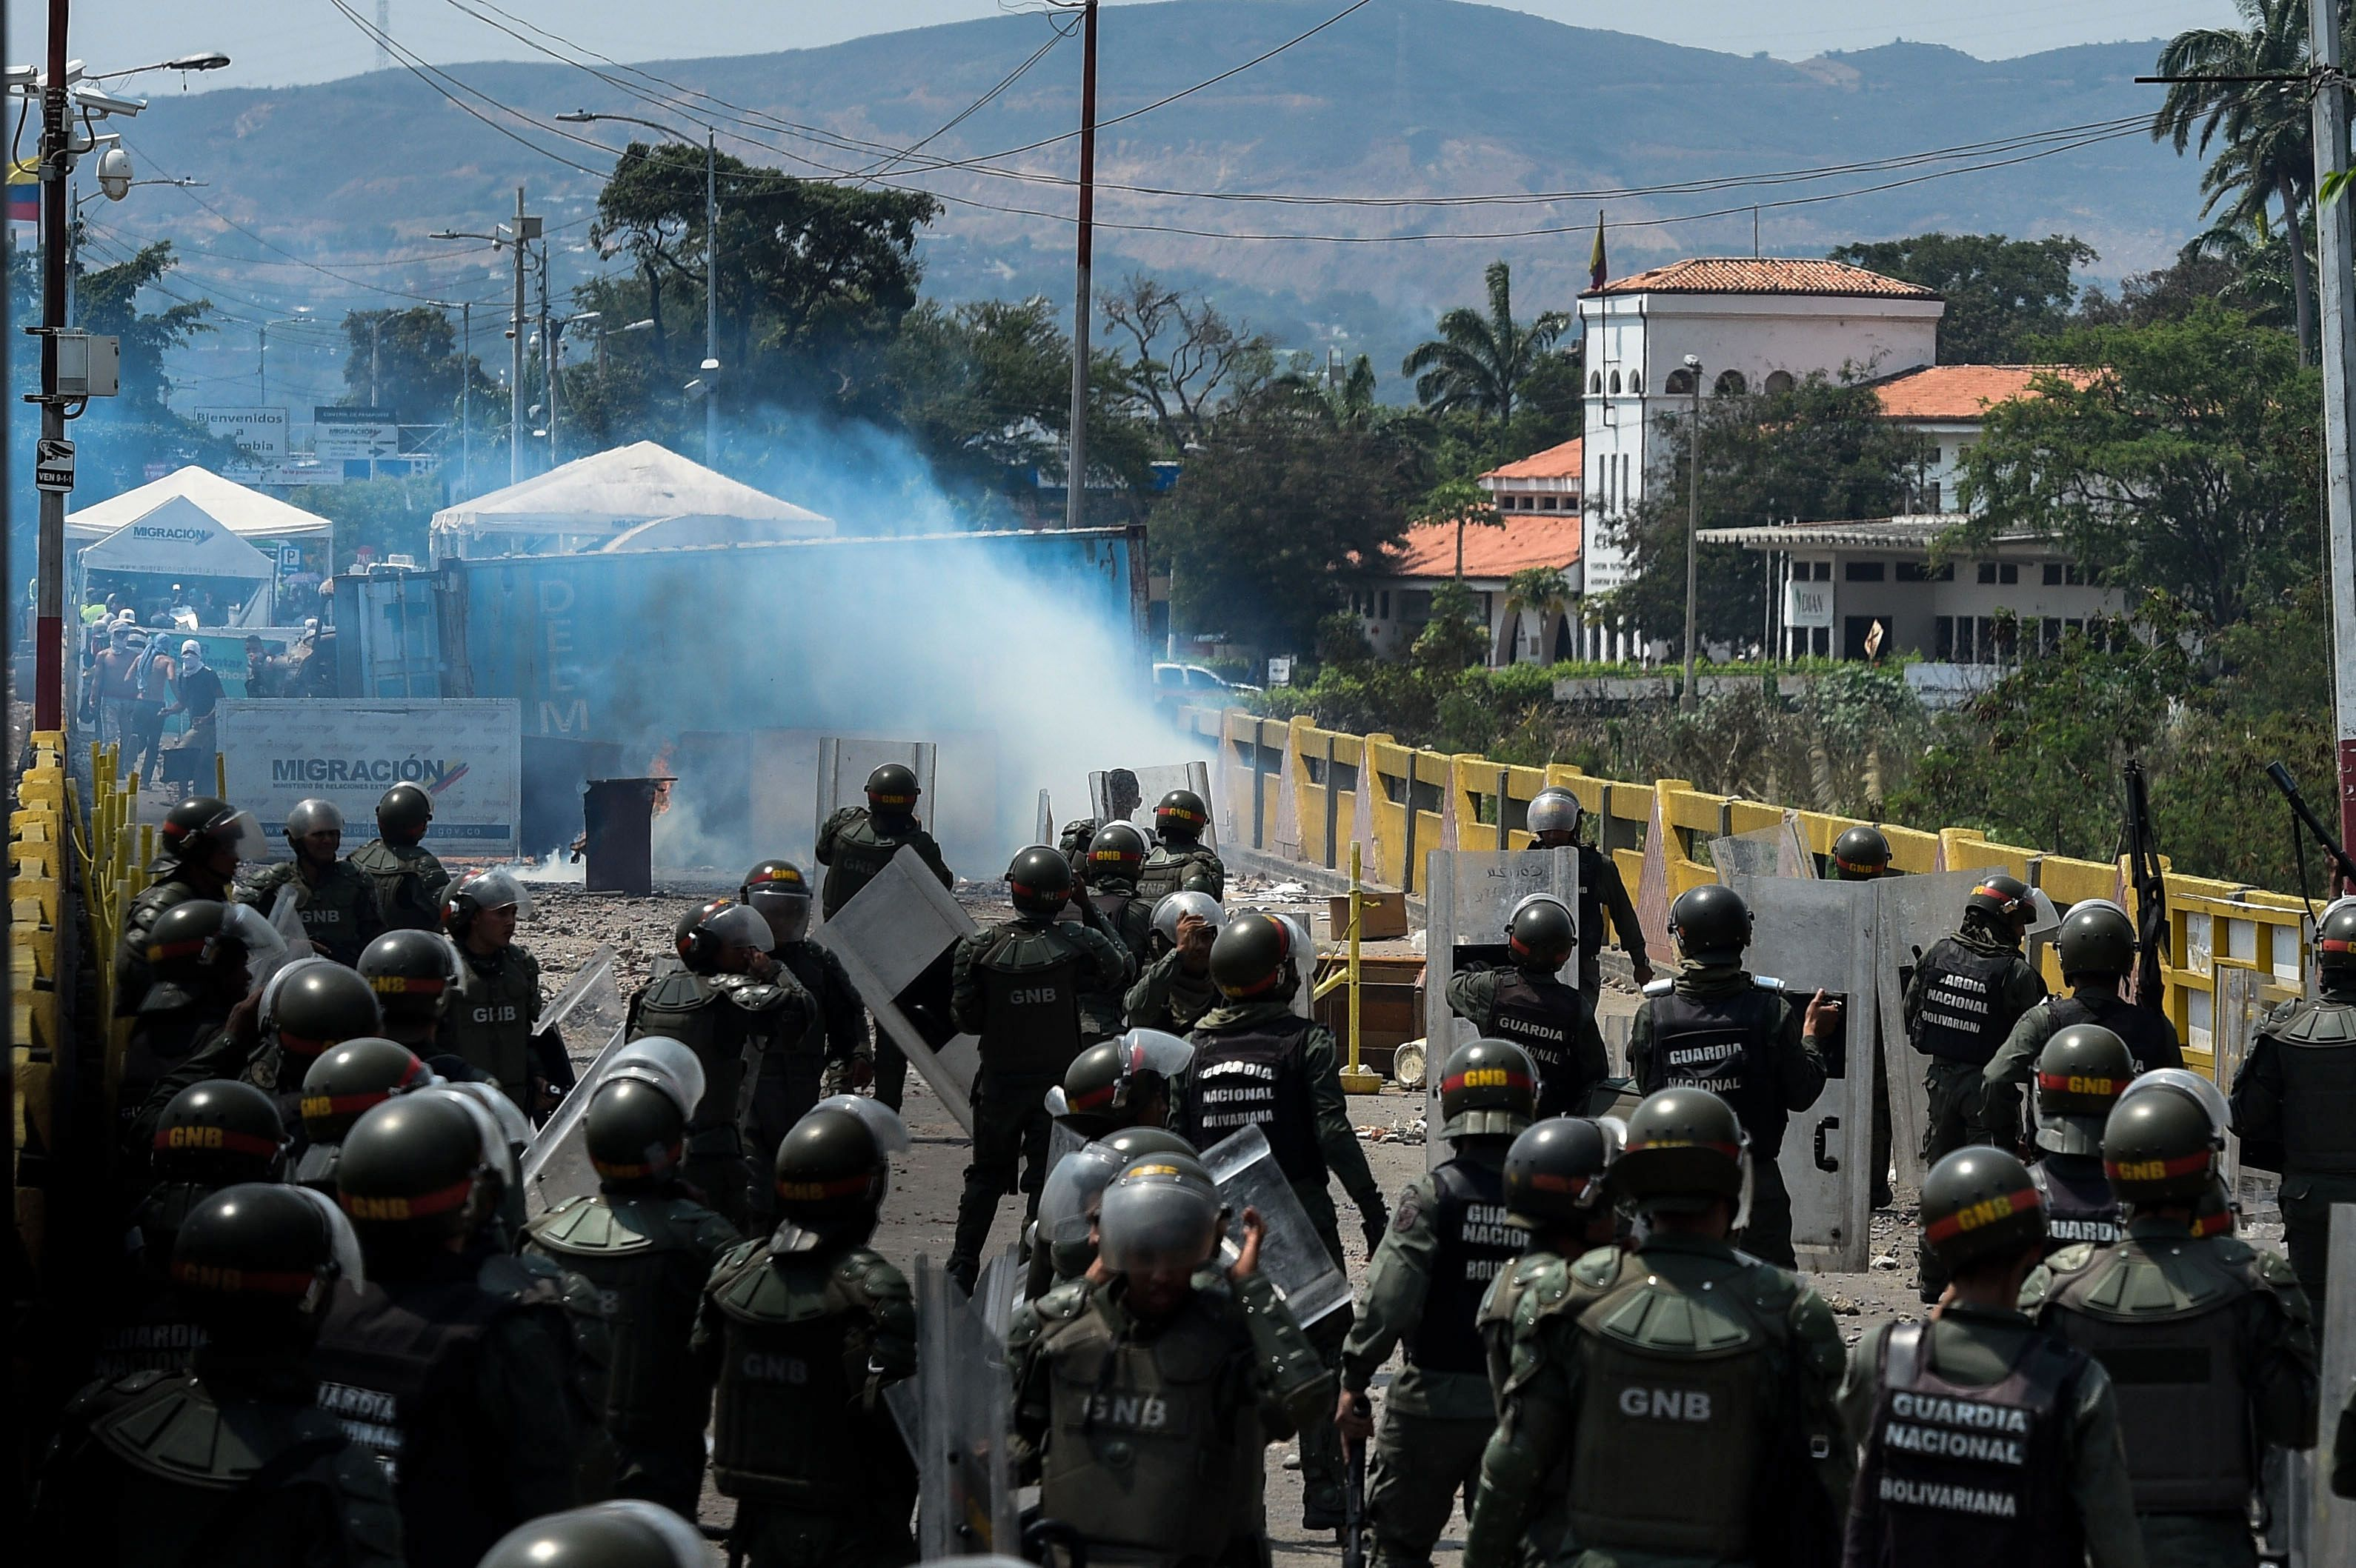 """Members of the Venezuelan National Guard clash with protesters of the Venezuelan opposition on the Simon Bolivar internatioonal bridge in San Antonio del Tachira, Venezuela, on the border with Colombia, on February 24, 2019. - International pressure mounted against Venezuela's leader Nicolas Maduro, with Washington vowing to """"take action"""" after opposition efforts to bring humanitarian aid into the country descended into bloody chaos. Maduro claims the aid is a smokescreen for a US invasion, and has ordered several crossings on Venezuela's borders with Colombia and Brazil closed. (Photo by Federico Parra / AFP)"""